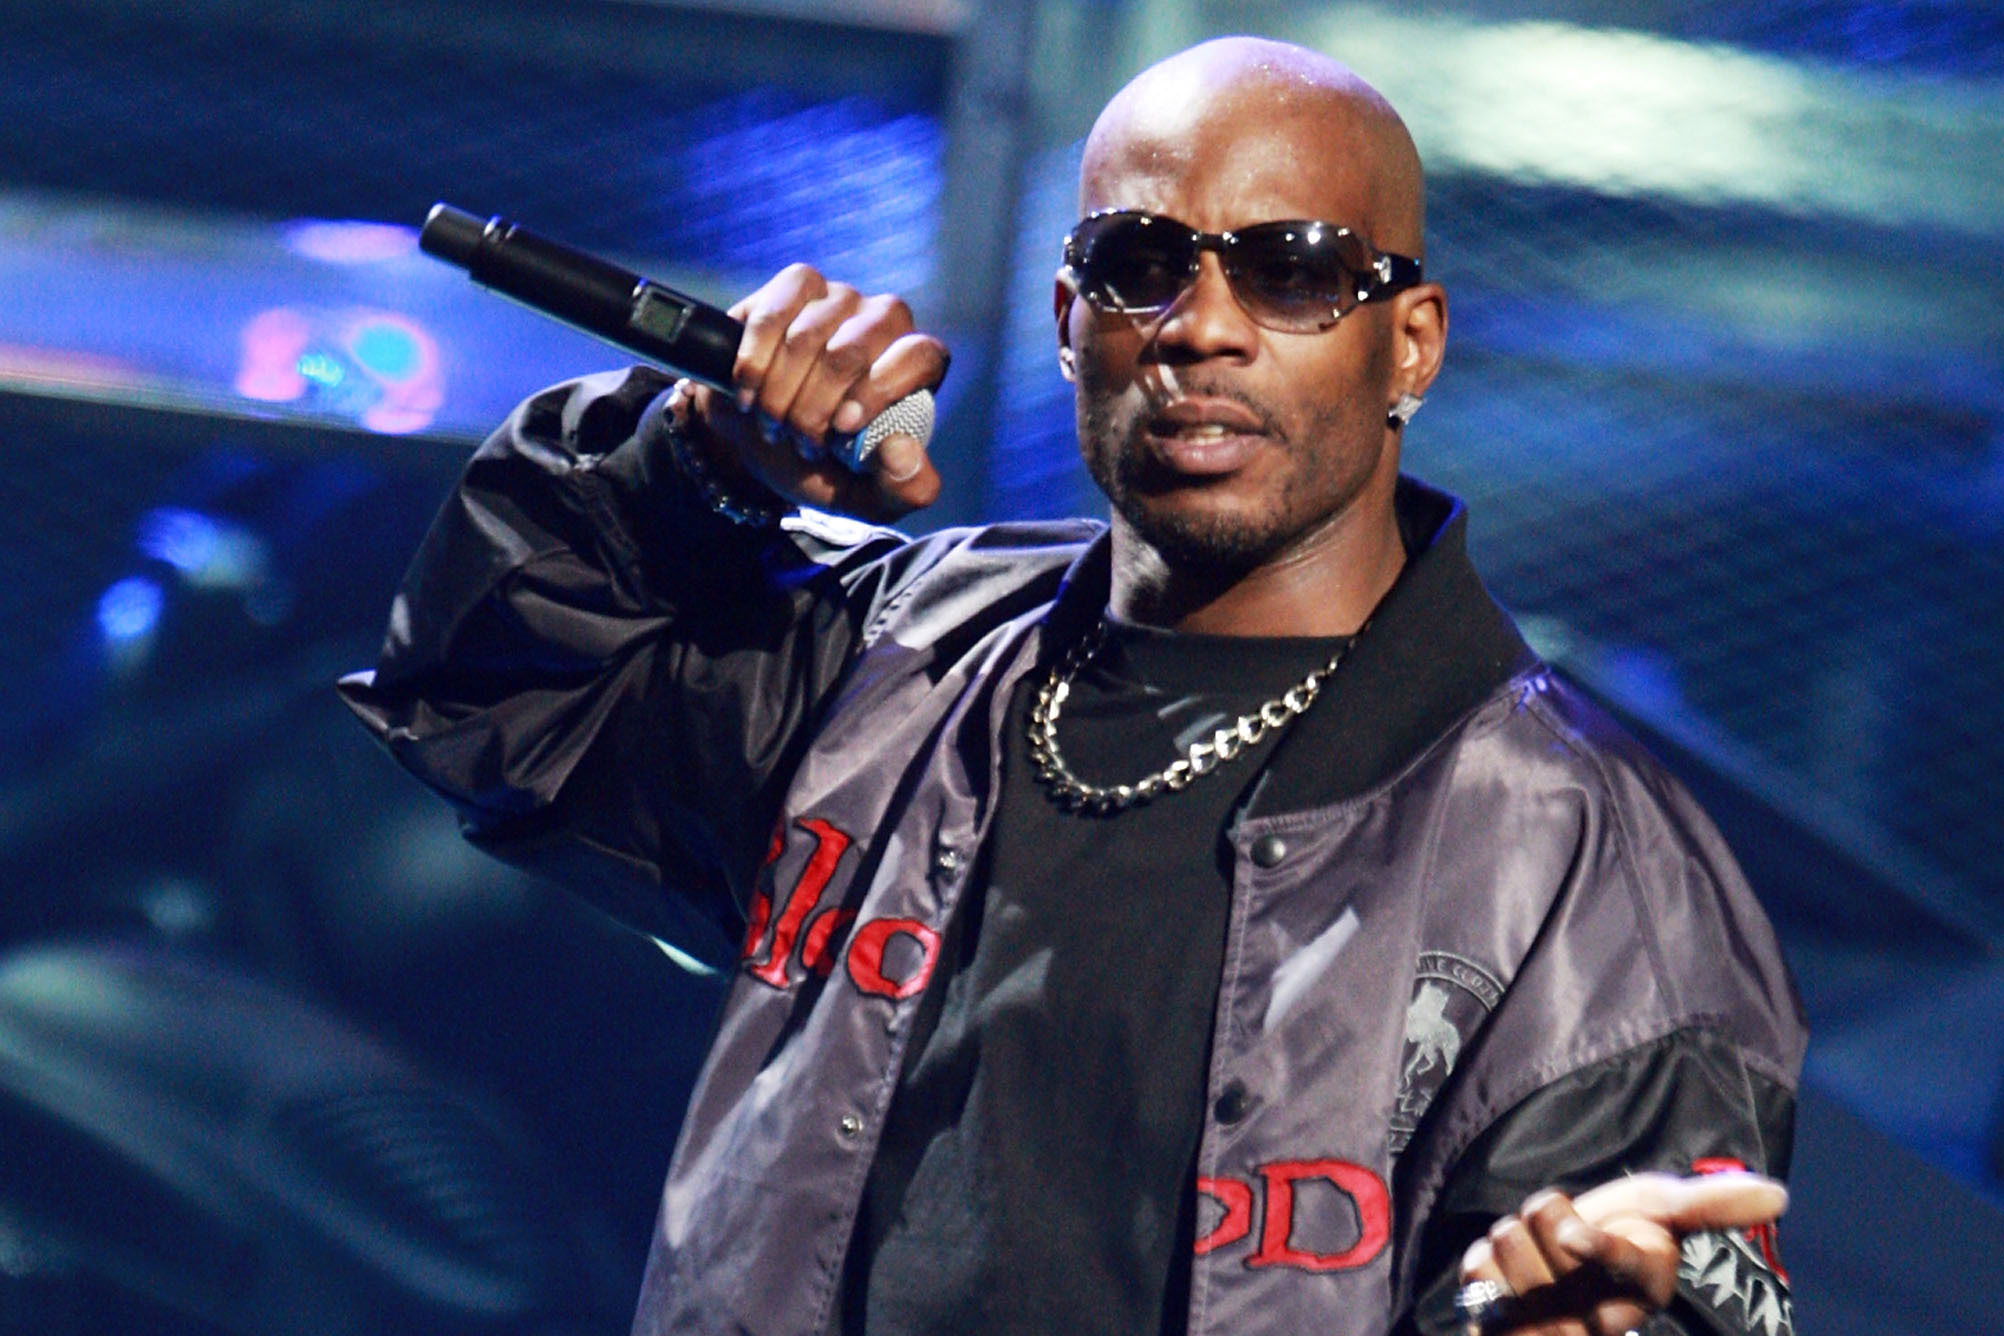 DMX arrested for $1.7m tax evasion charge